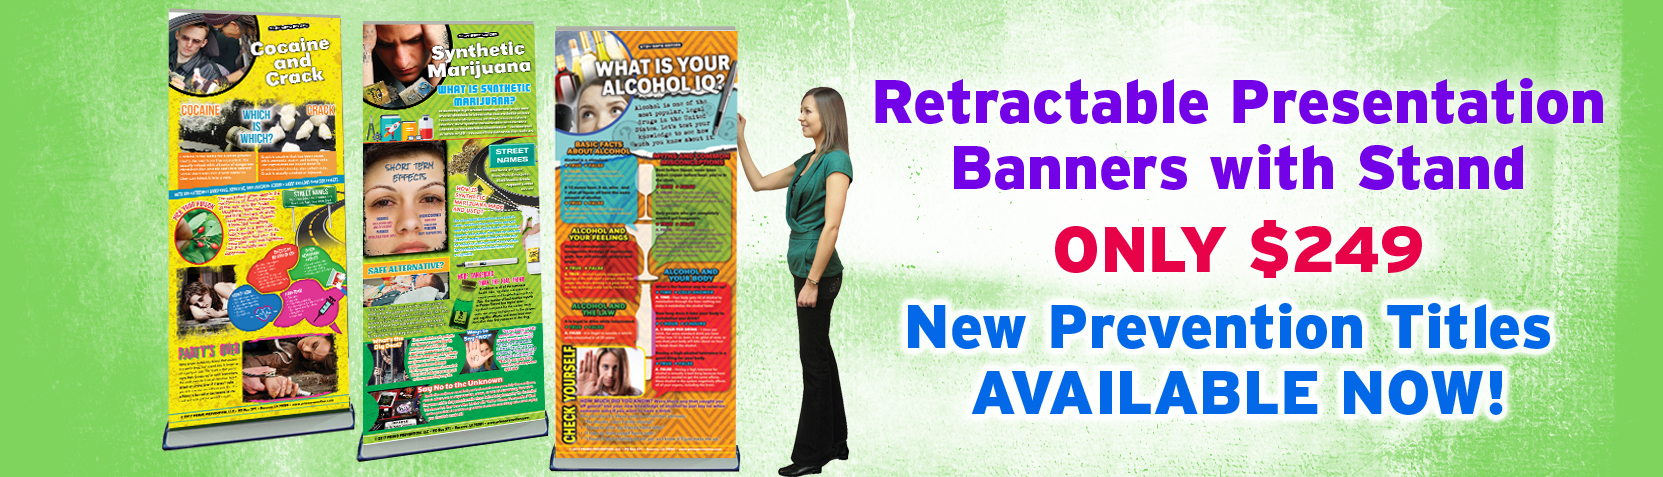 RetractableBanner-NEW-Header-3-17